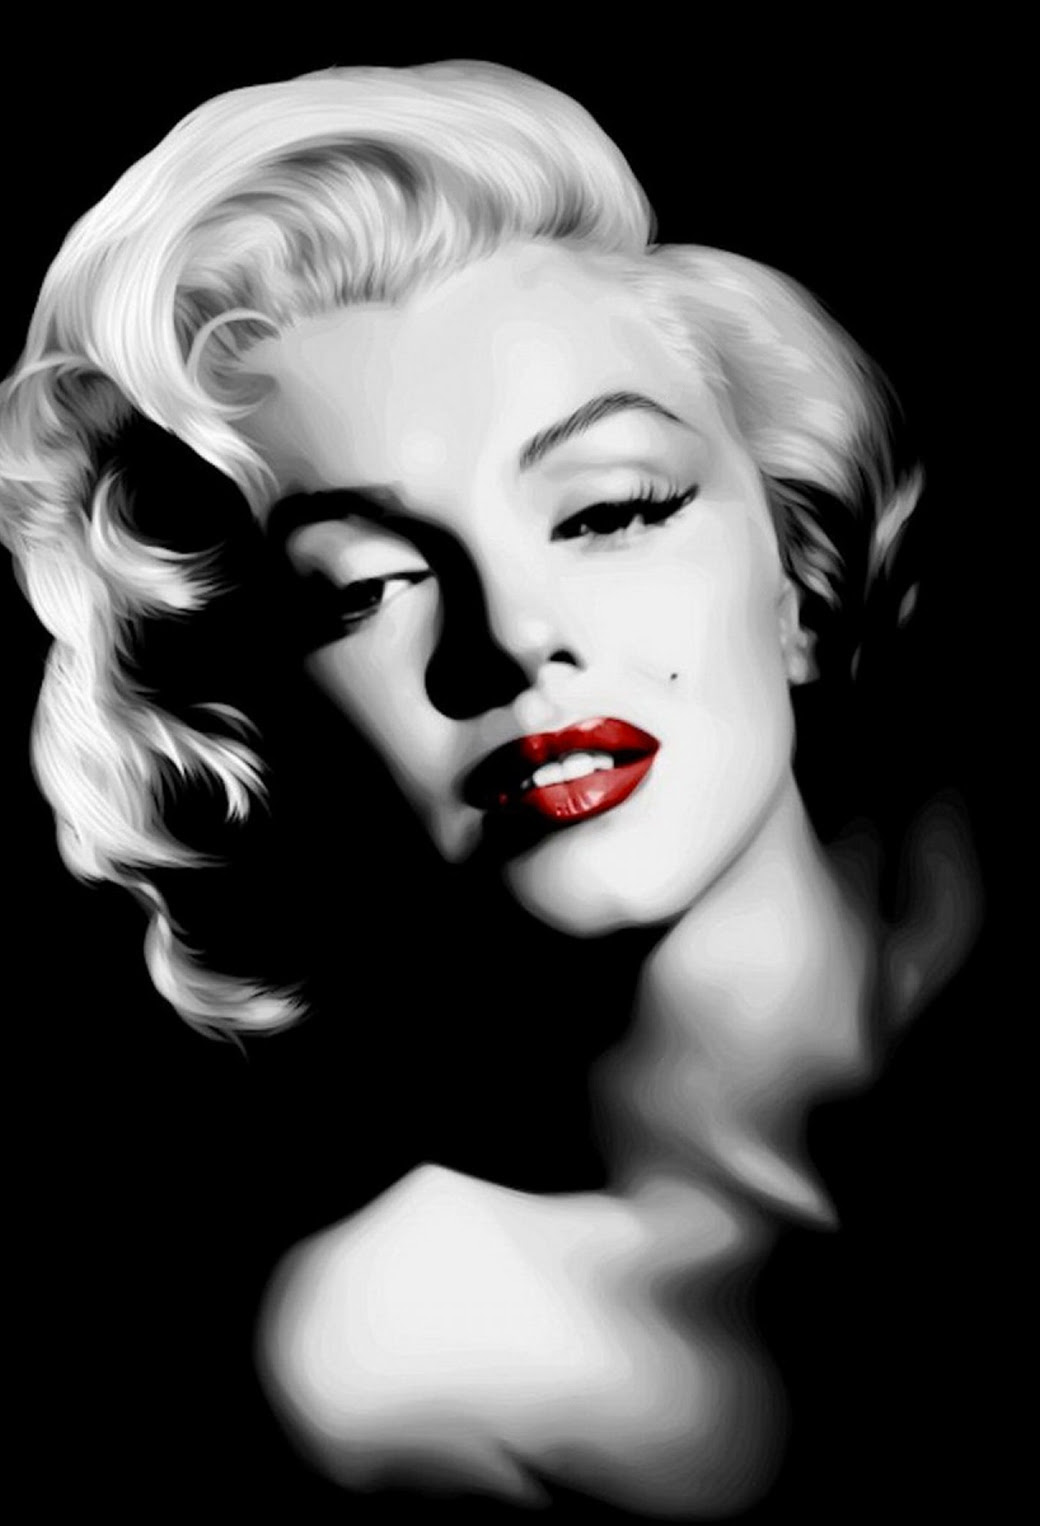 Marilyn Monroe In Dark Wallpaper For Iphone 11 Pro Max X 8 7